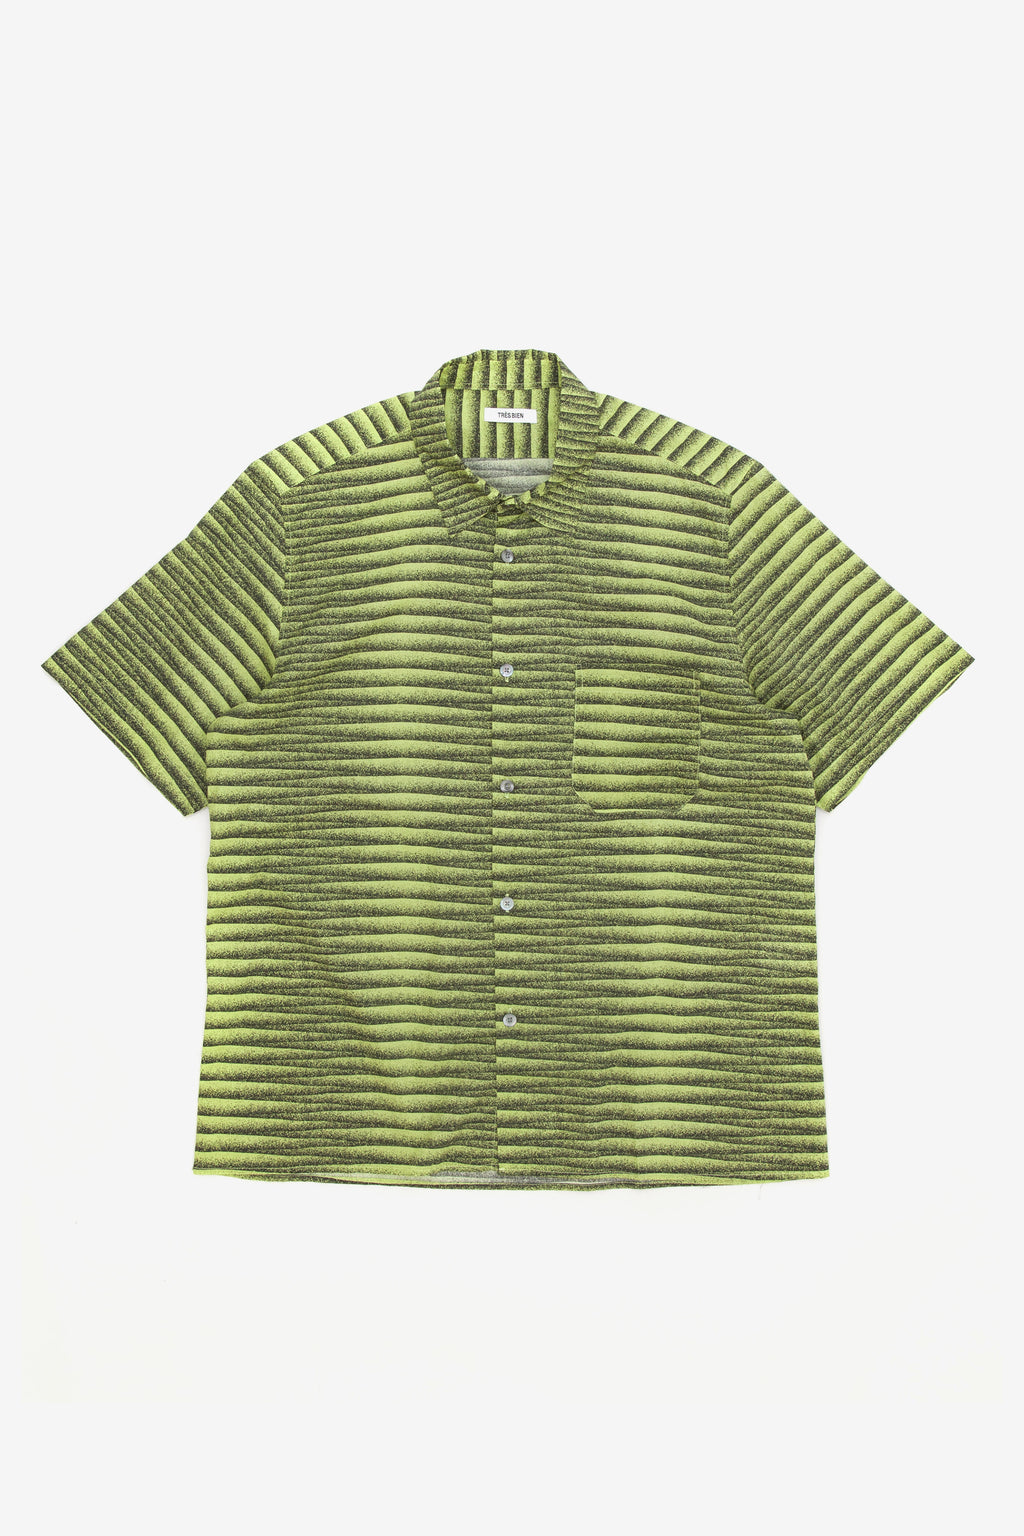 Tres Bien Tourist Shirt Agassi Green Stripe